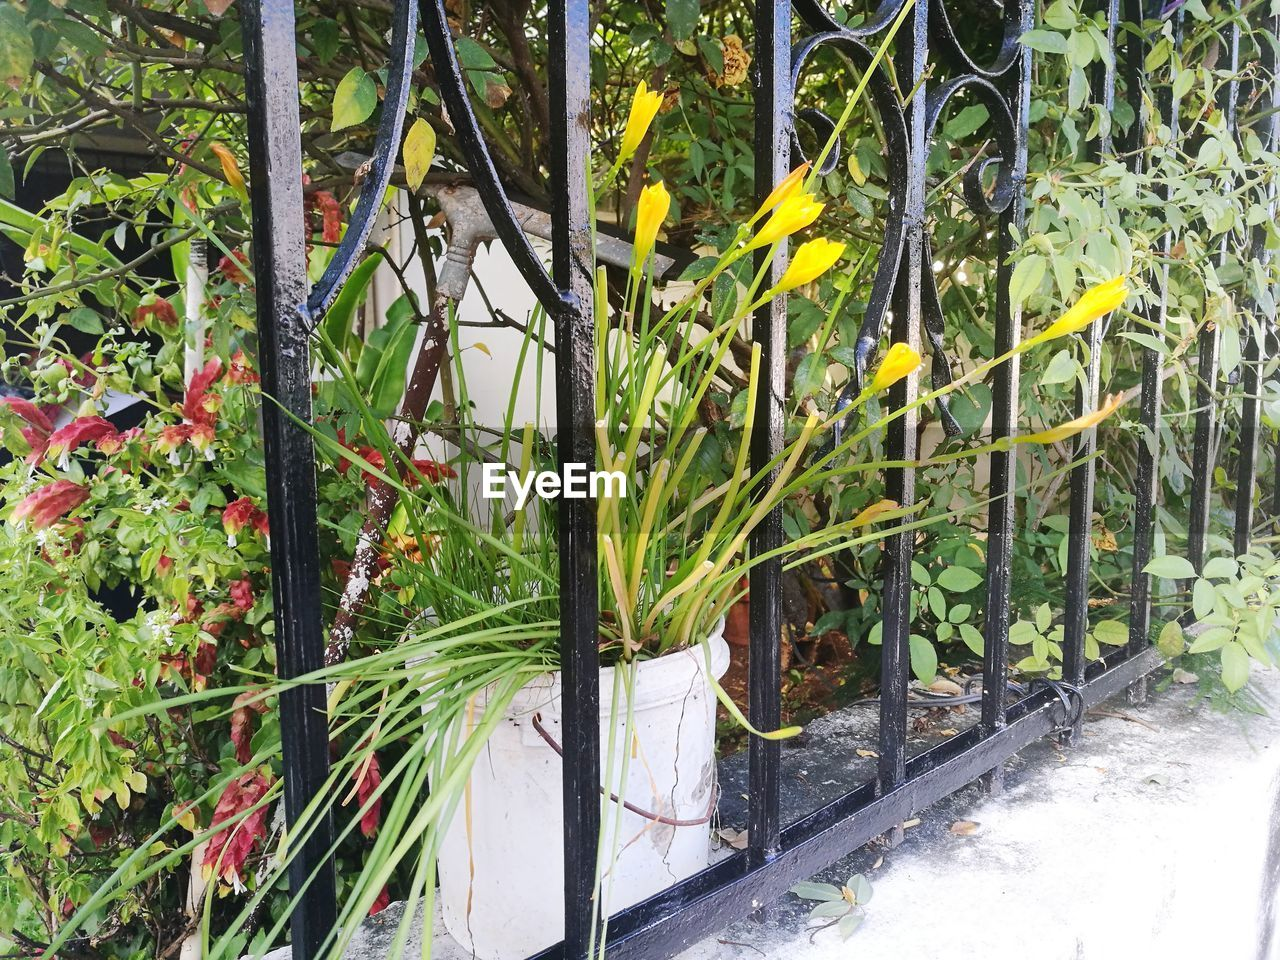 plant, growth, nature, no people, green color, day, beauty in nature, plant part, outdoors, leaf, barrier, metal, architecture, boundary, tree, fence, gate, railing, botany, built structure, bamboo - plant